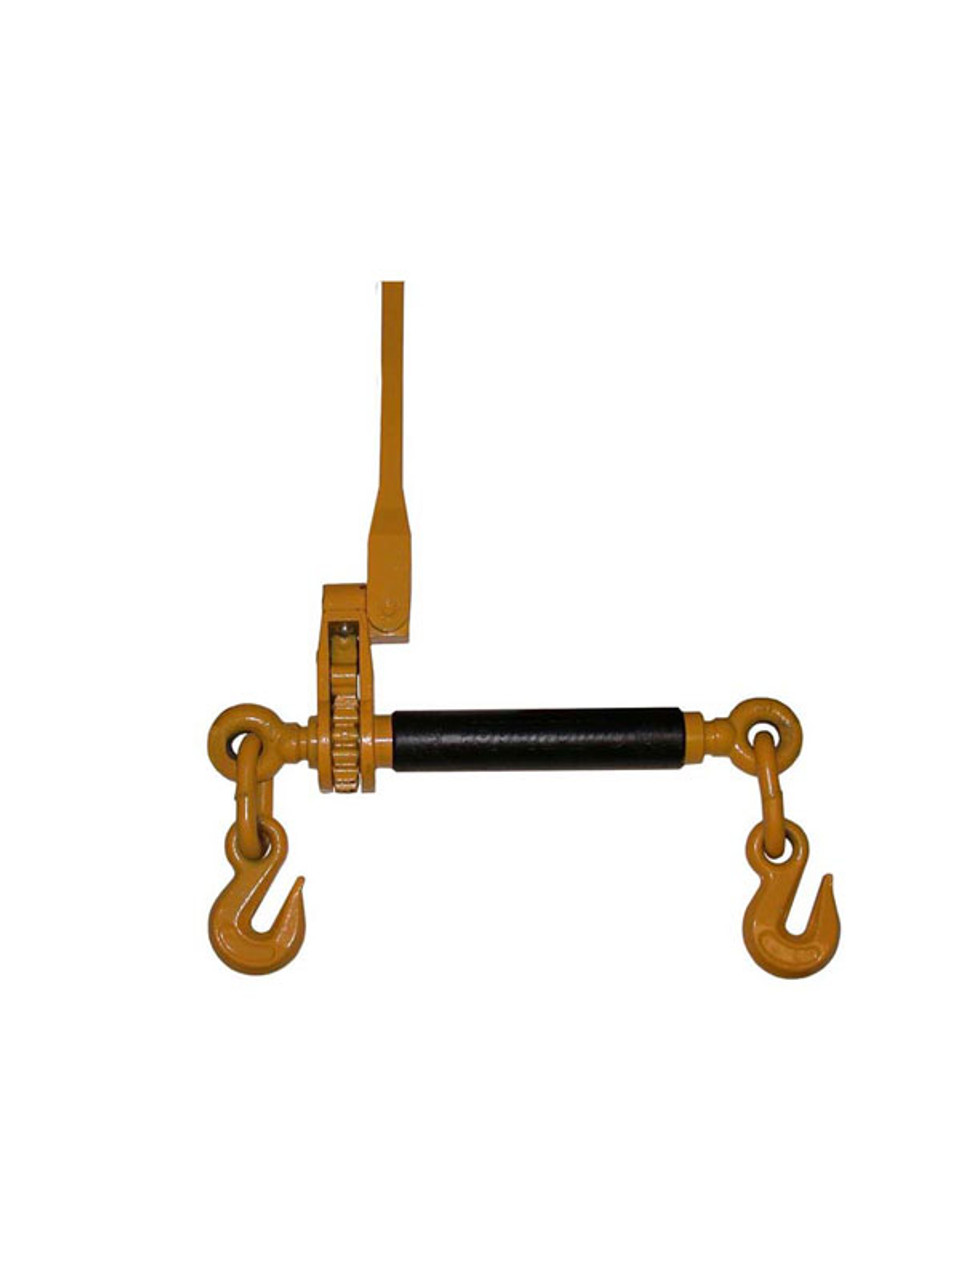 "QLBR38-7K --- QuikBinder Quick Ratchet Load Binder with Fold Down Handle - 3/8"" Chain Size"